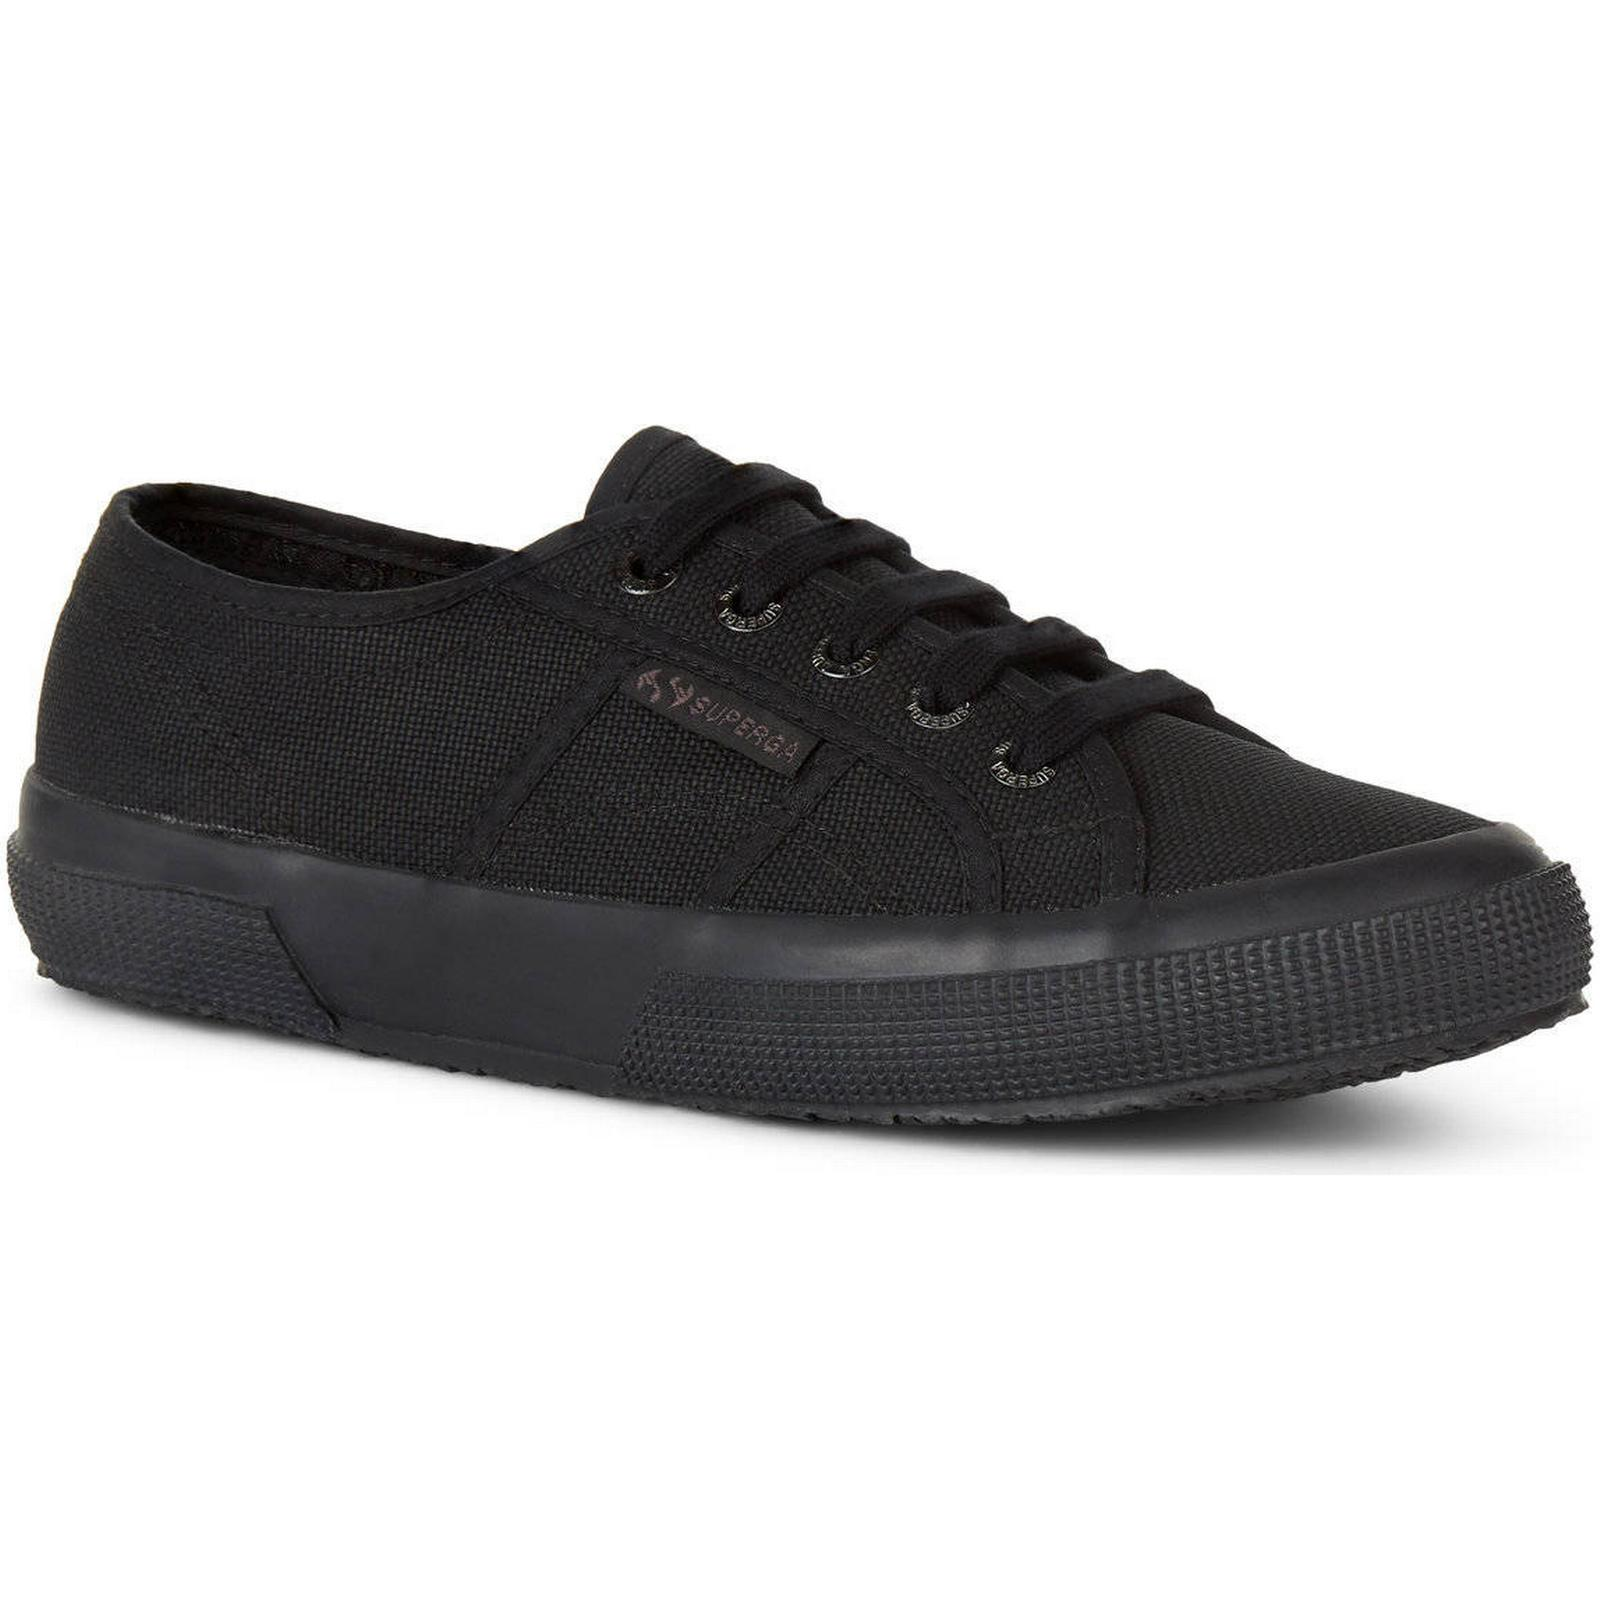 Superga 8 2750 COTU CLASSIC 8 Superga (EU 42) Total Black 82d6a2